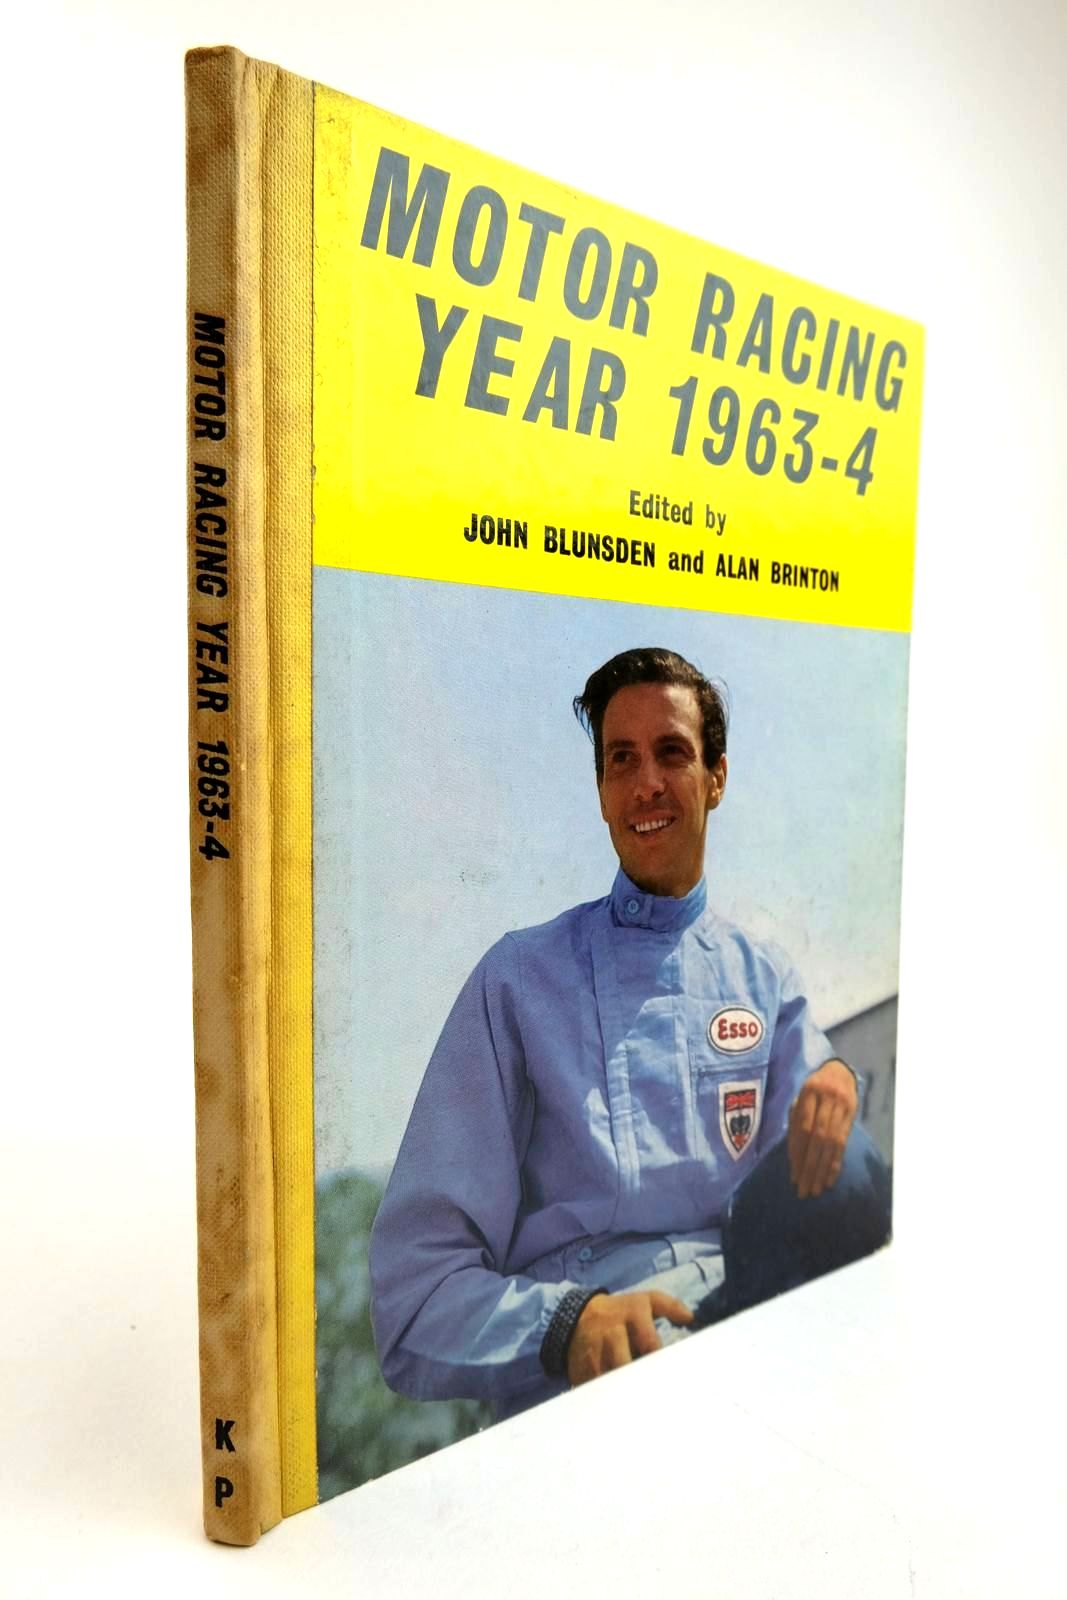 Photo of MOTOR RACING YEAR 1963-4- Stock Number: 2134306